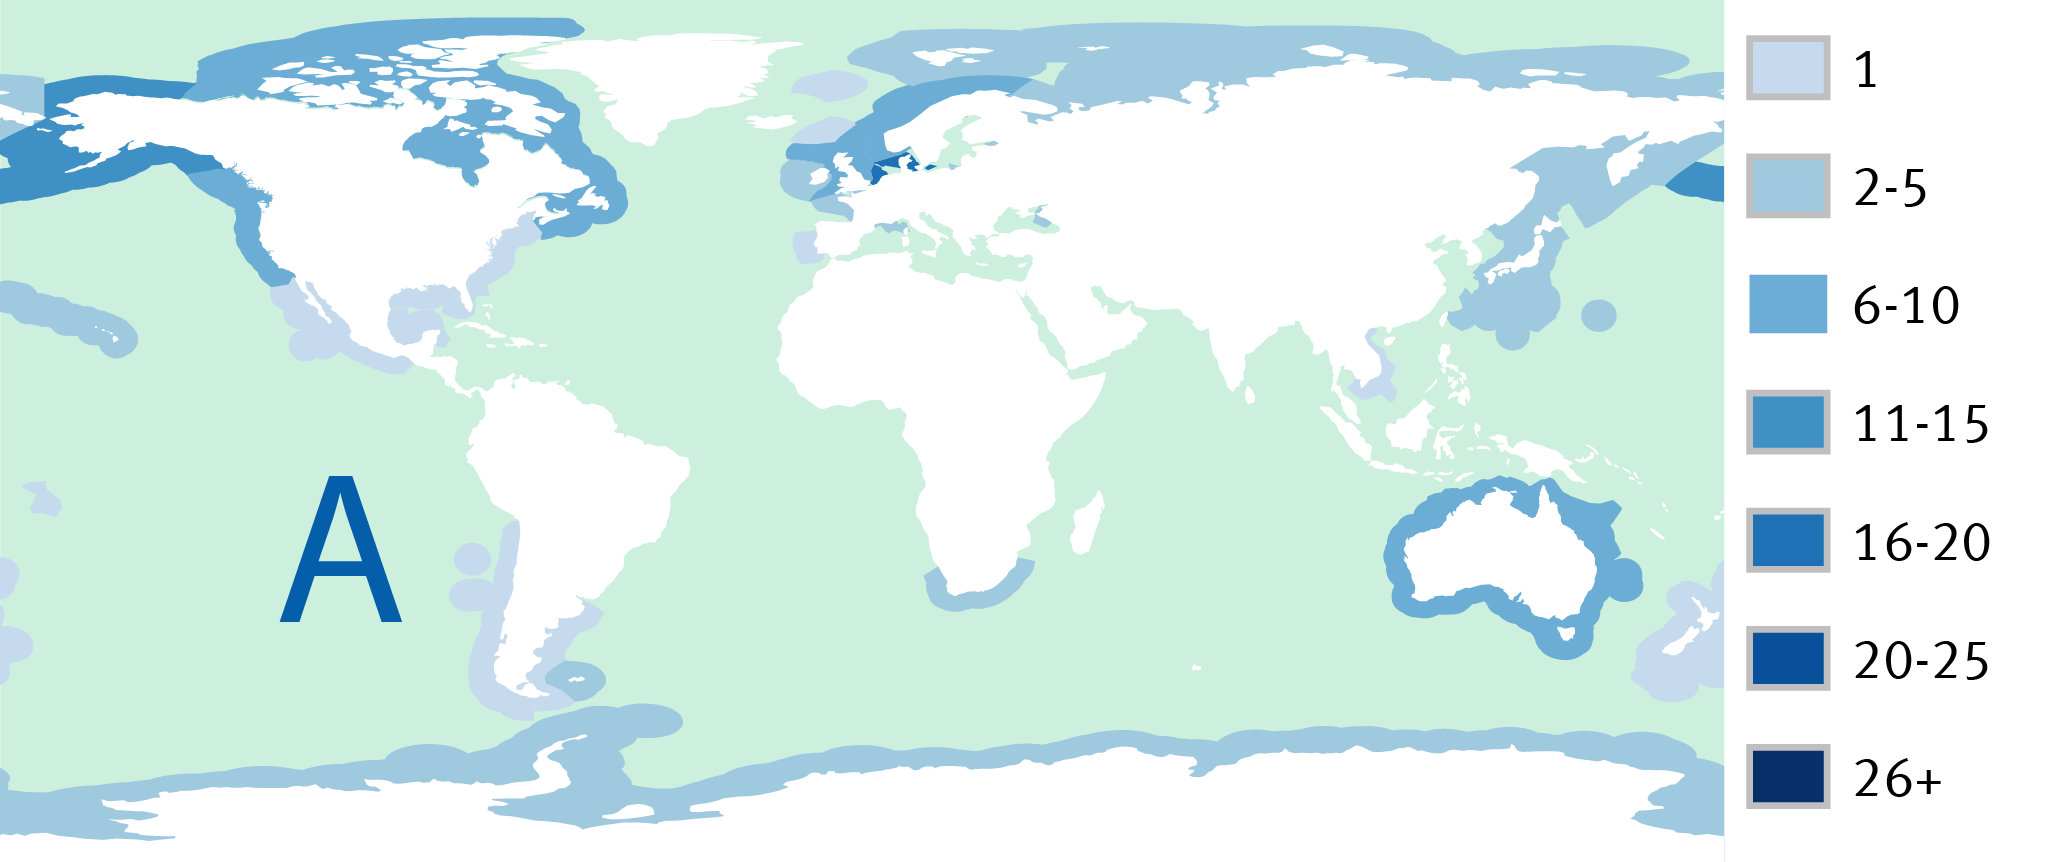 Map A: Number of certified fisheries in each country's Exclusive Economic Zone (EEZ) in 2010